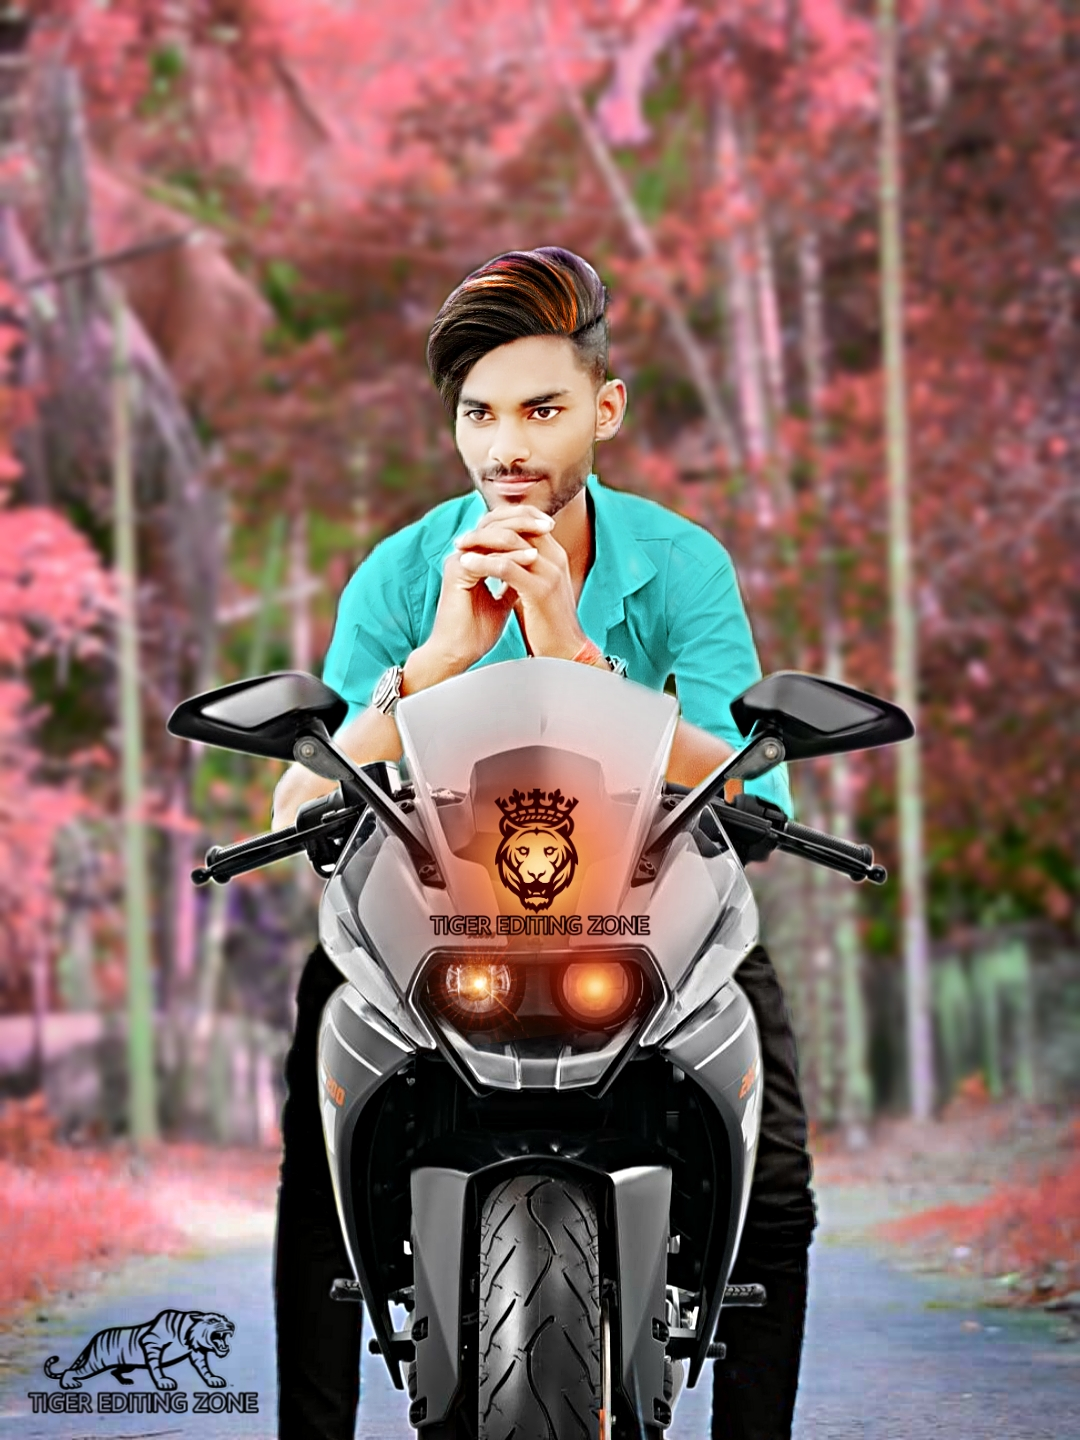 KTM Bike Lover Photo Editing | KTM Bike Background Hd | Bike Background and PNG